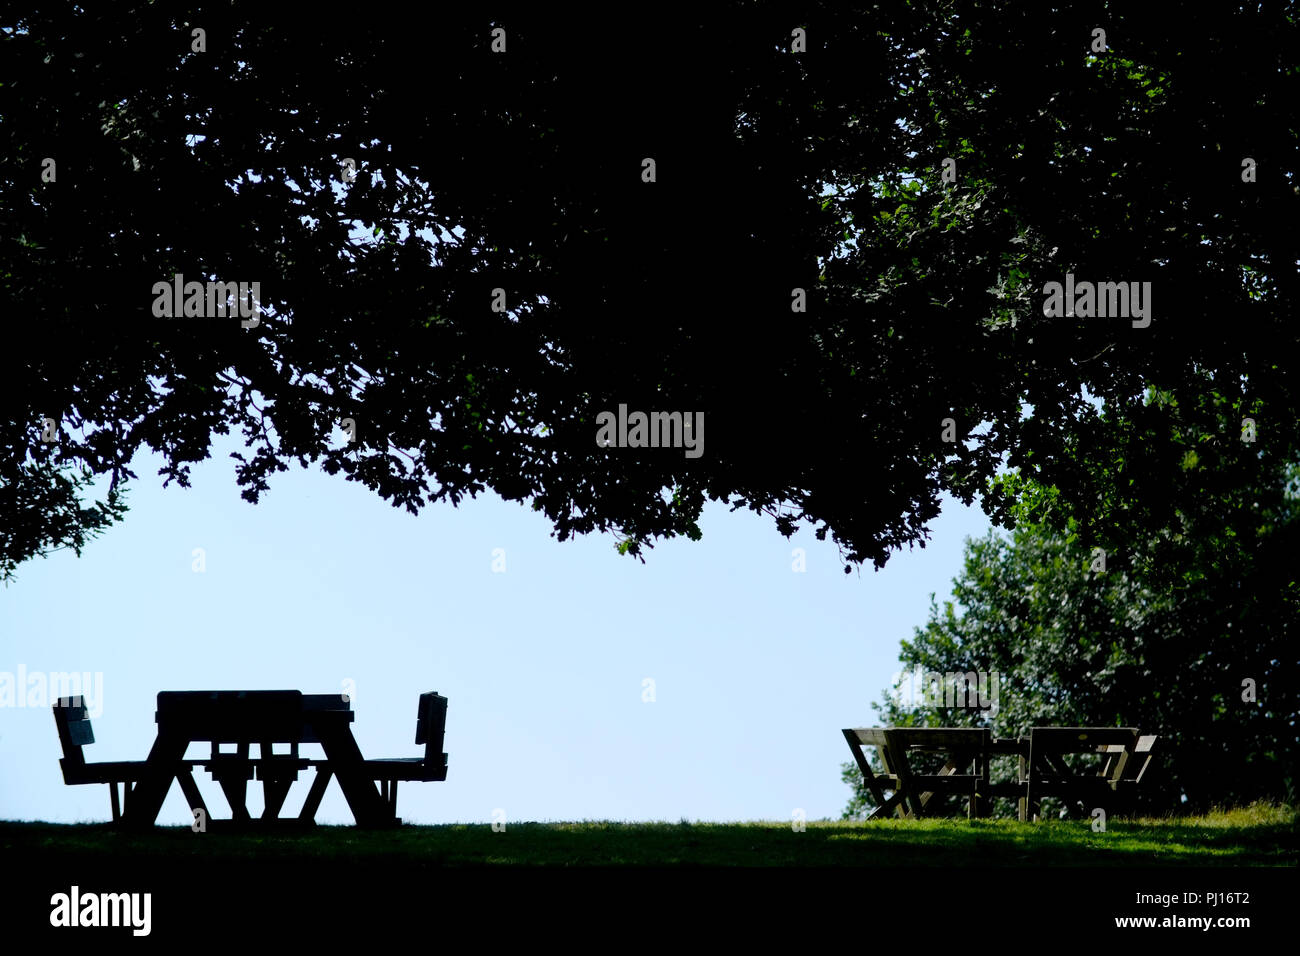 Table de pique-nique sous un arbre, silhouette. Photo Stock